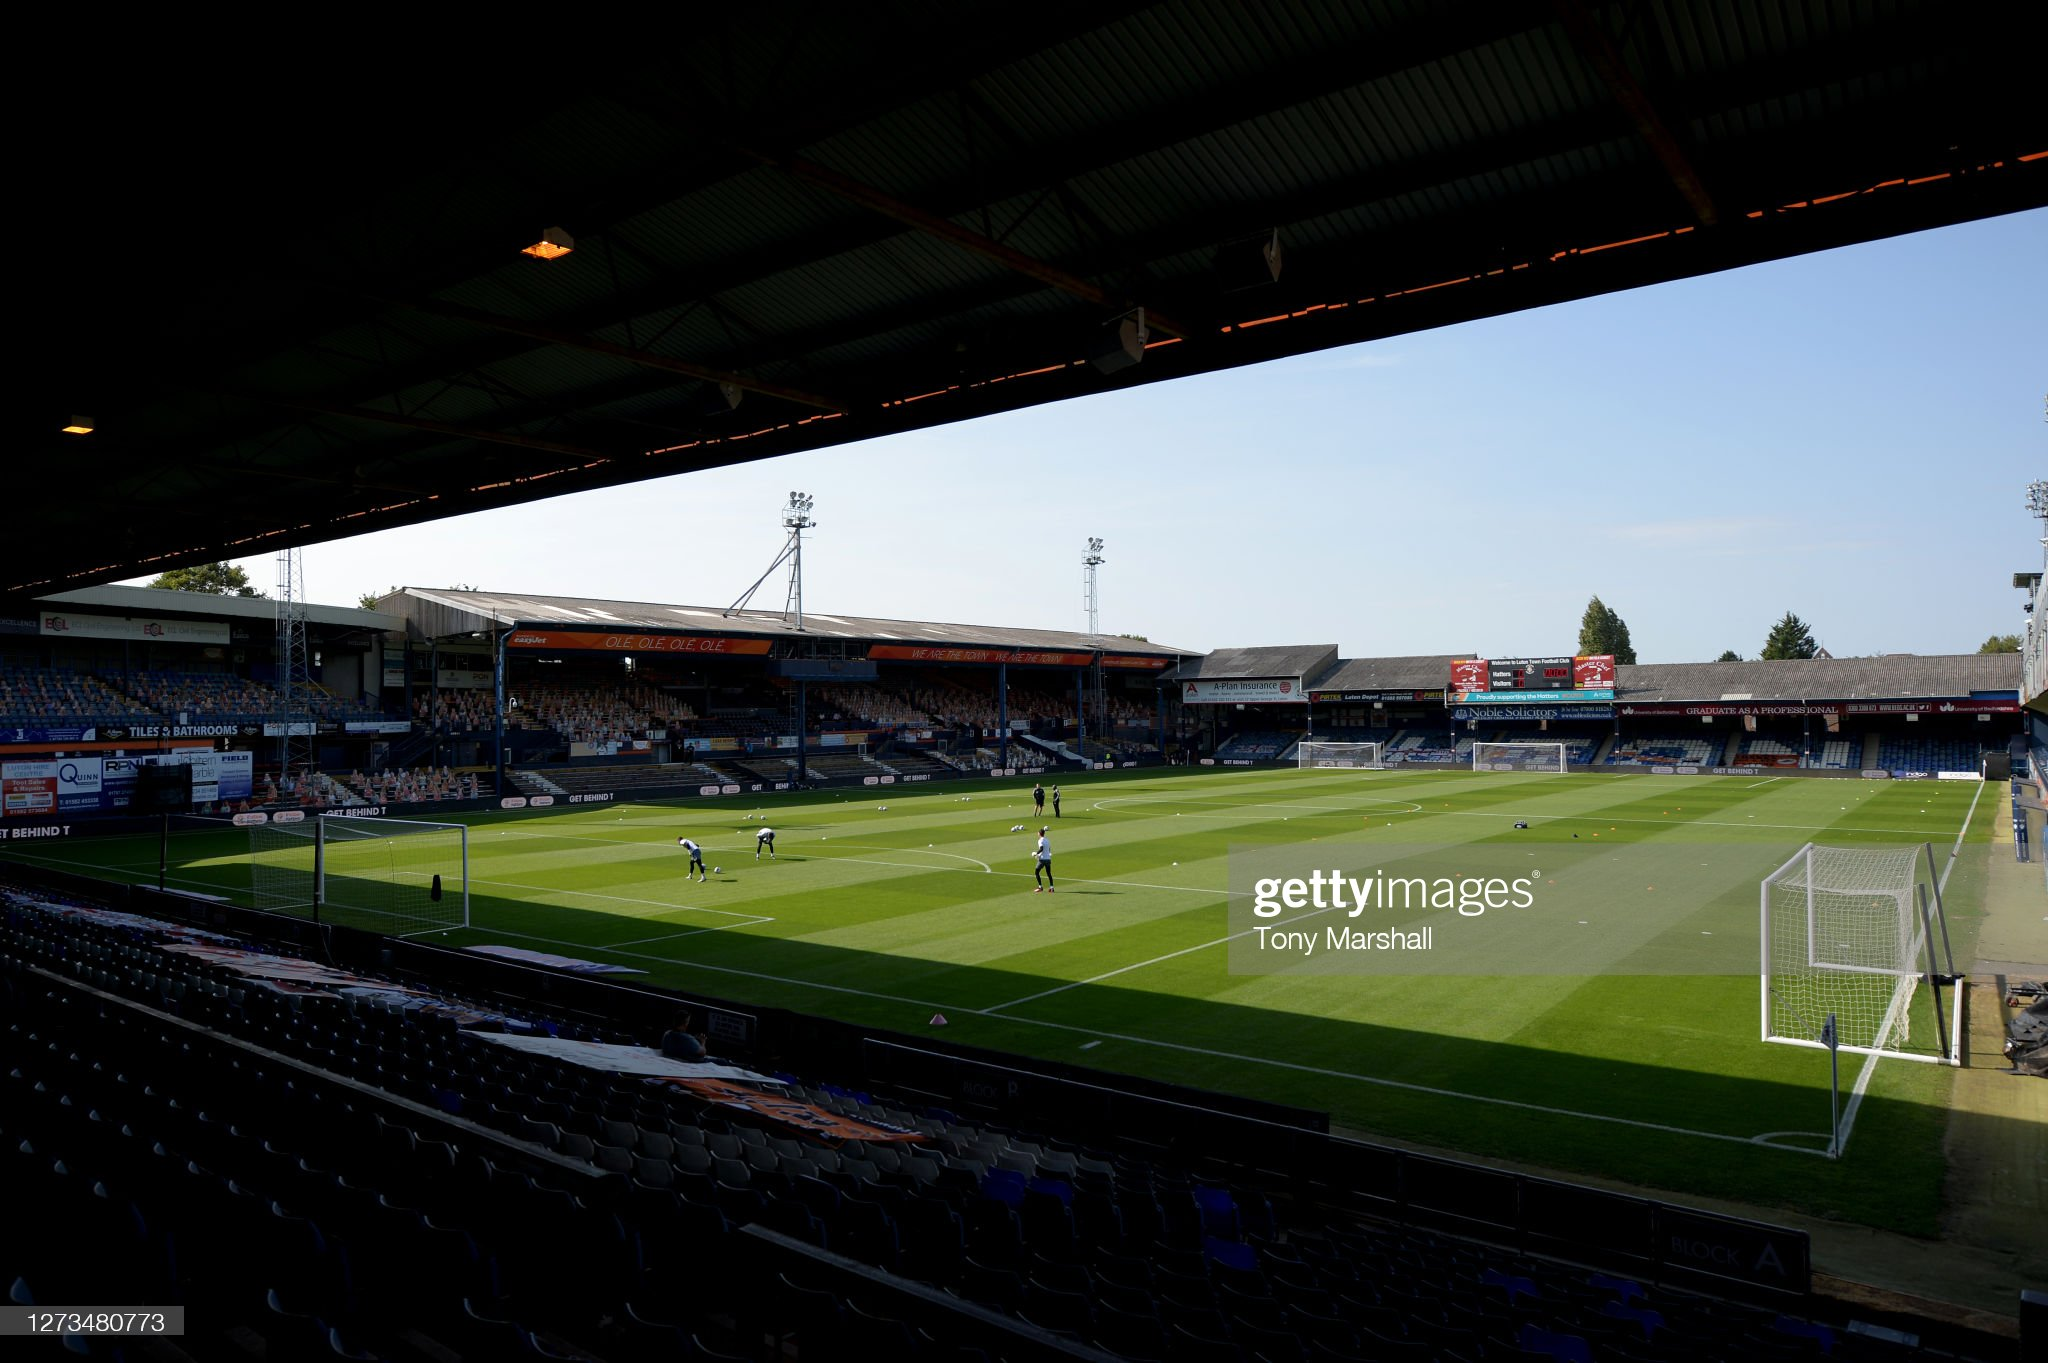 luton town vs man united - photo #34